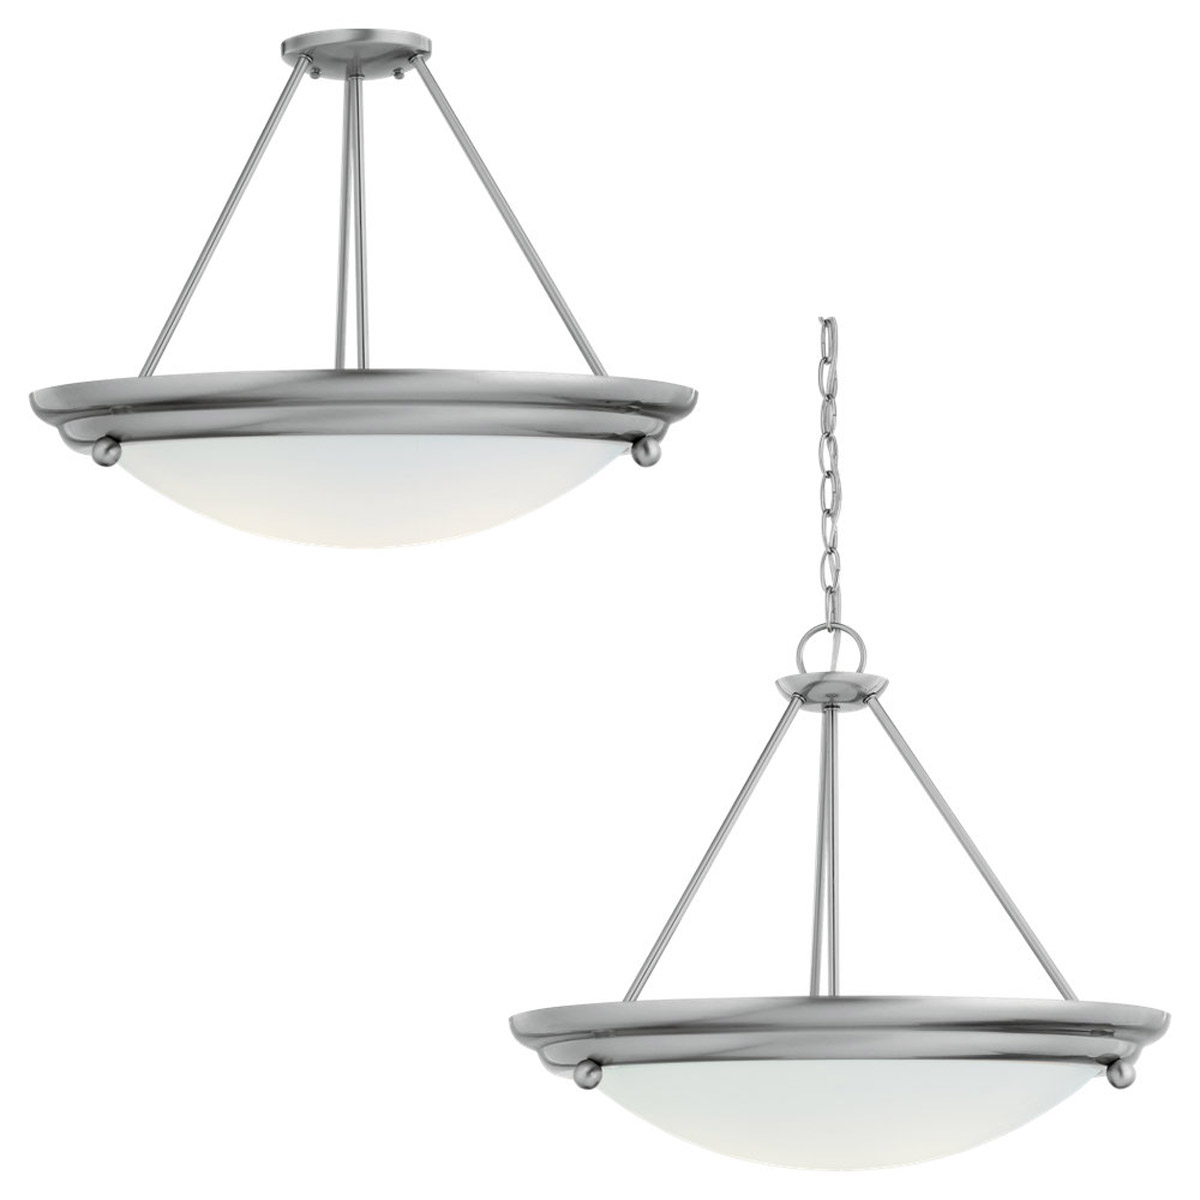 Sea Gull Lighting Centra 4 Light Pendant Convertible in Brushed Stainless 66238-98 photo